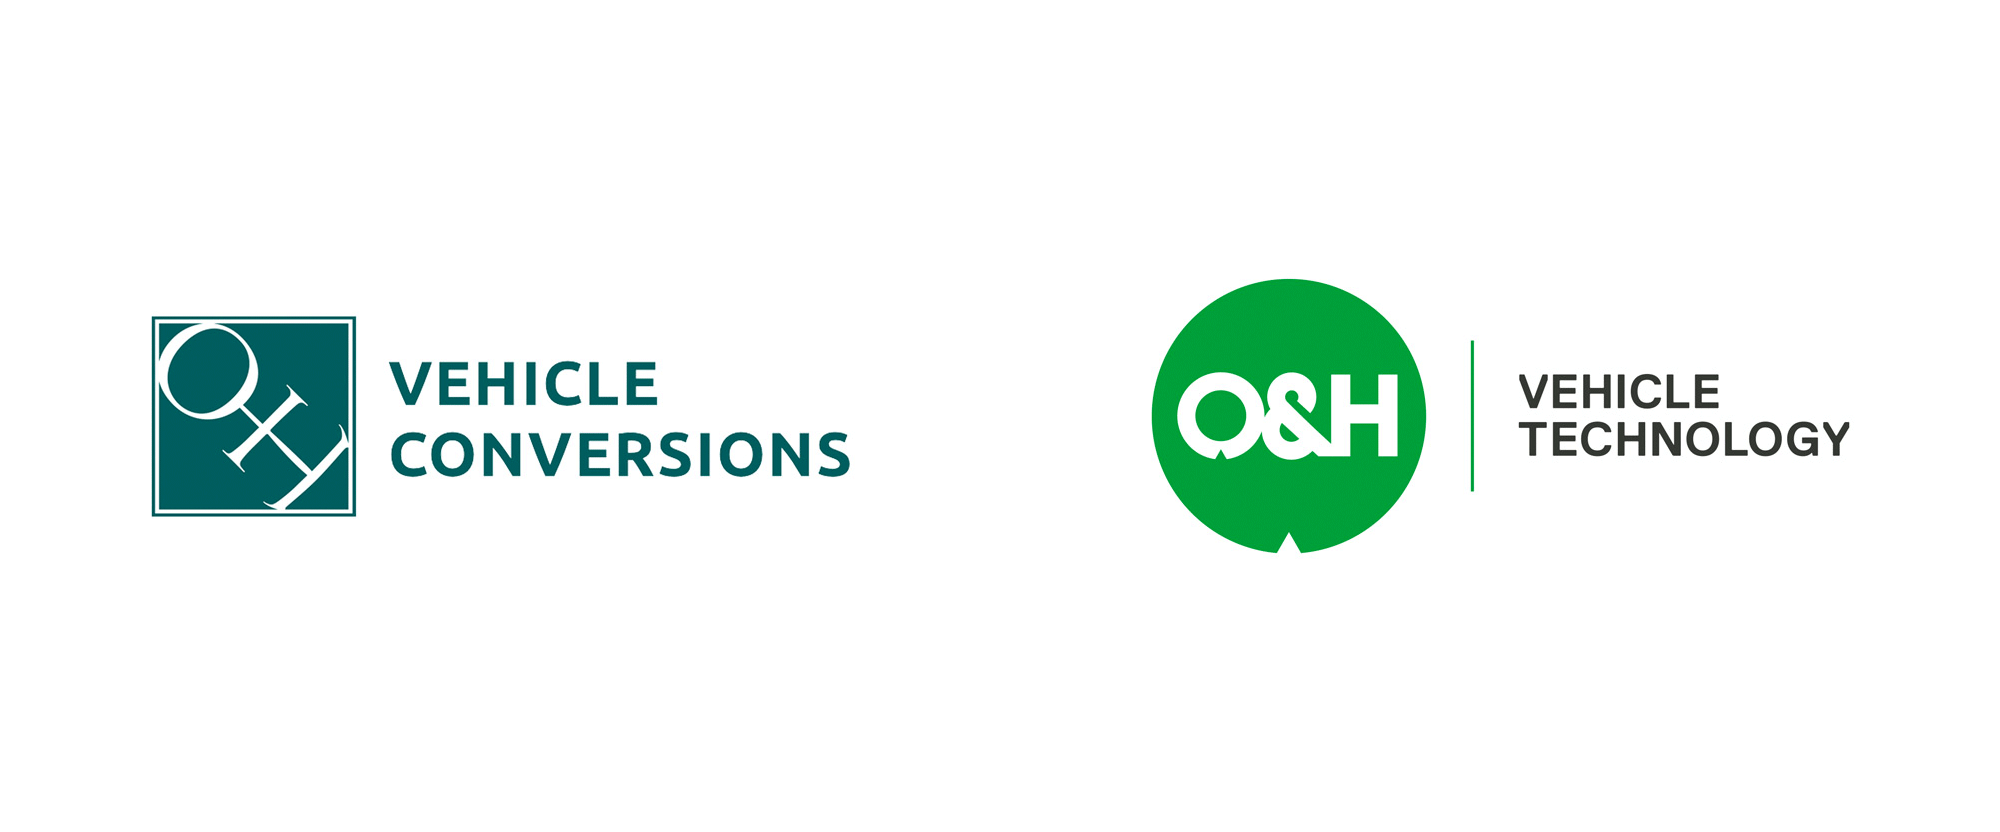 New Logo and Identity for O&H Vehicle Technology by Aye!